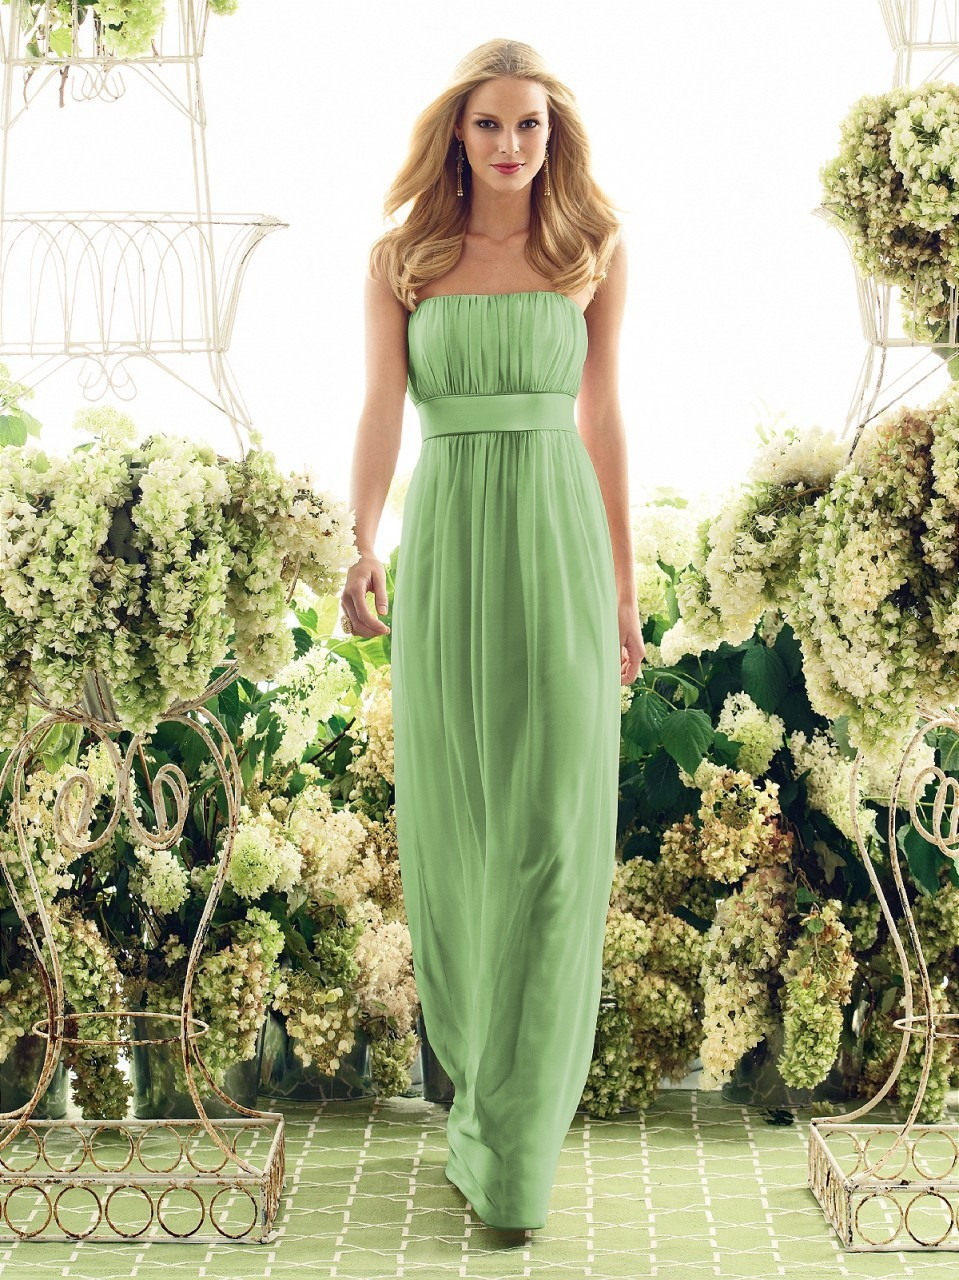 Cheap Elegant A-Line Floor Length Chiffon Formal Strapless Long Prom Party Gown Backless Sleeveless 2018 Bridesmaid Dresses